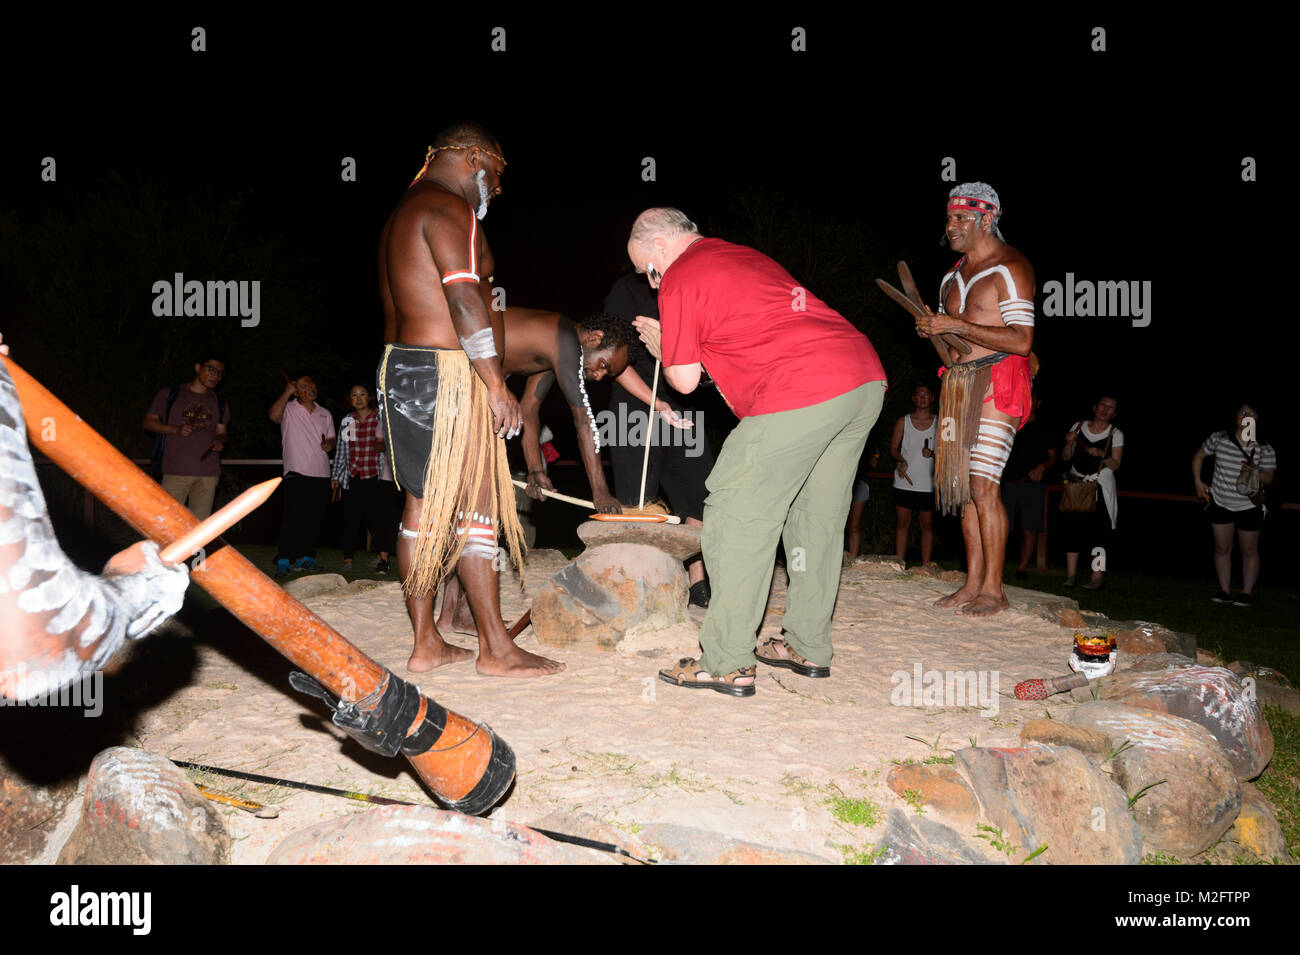 Tourist being shown how to start a fire during a show at Tjapukai Aborignal Cultural Park, Smithfield, Cairns, Far - Stock Image